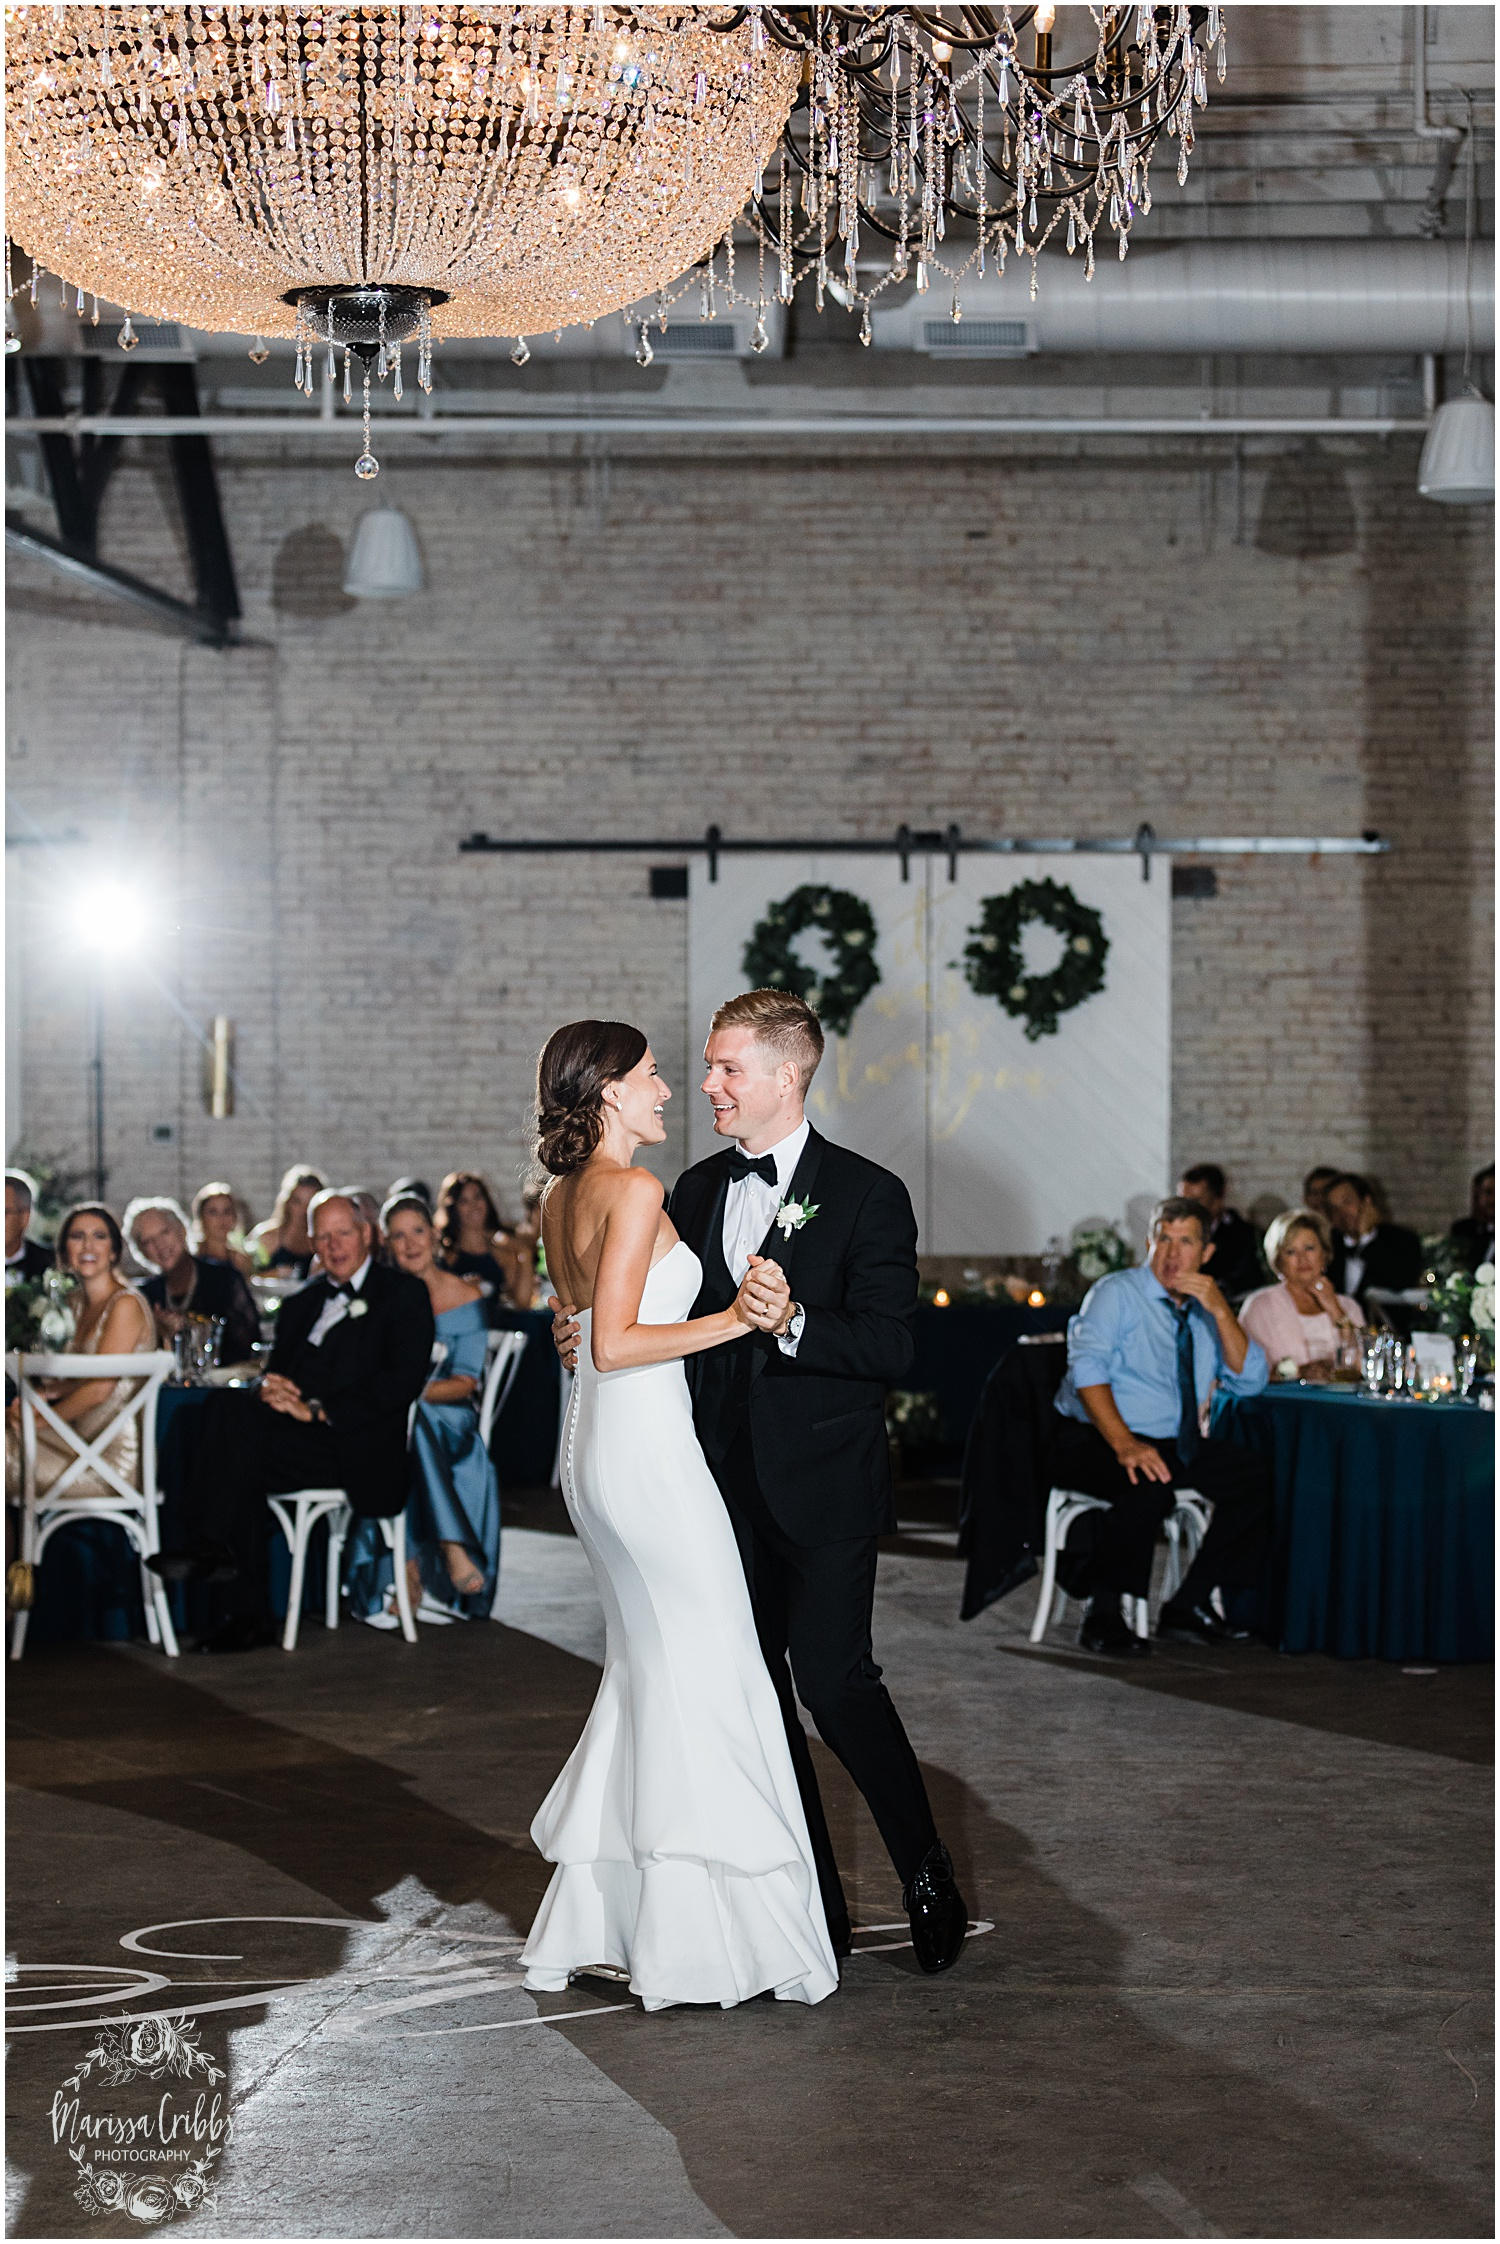 JOANNE & GEORGE MARRIED BLOG | MARISSA CRIBBS PHOTOGRAPHY | THE ABBOTT | KANSAS CITY WEDDING PHOTOS_9183.jpg